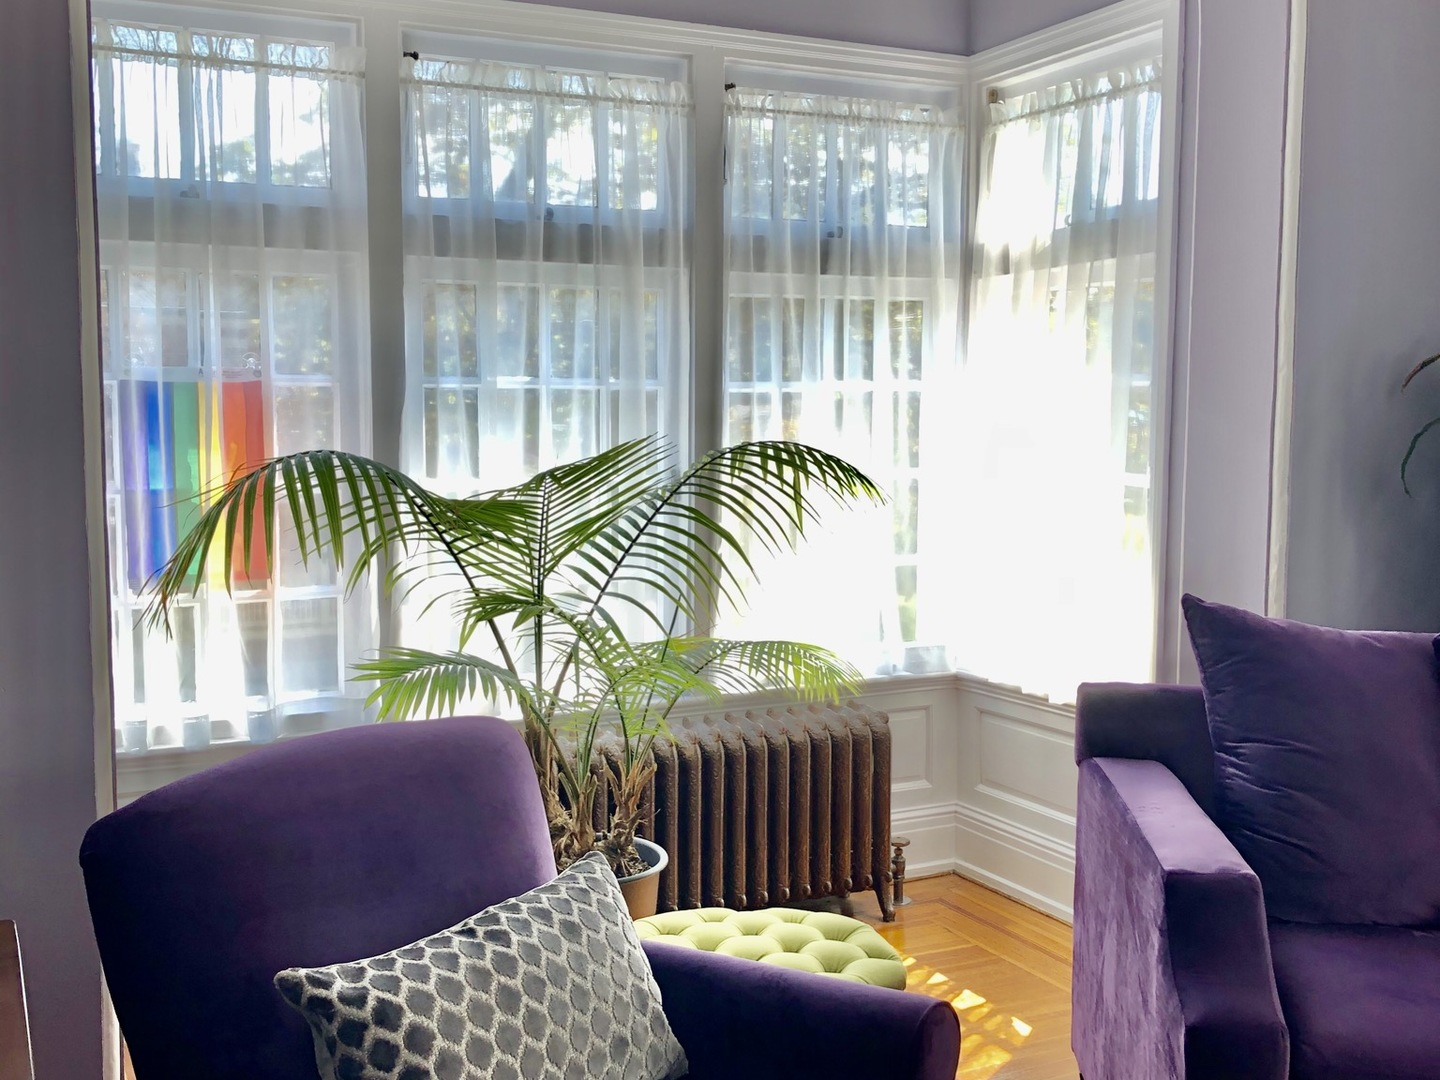 A living room filled with furniture and a large window at Himes House Bed & Breakfast.